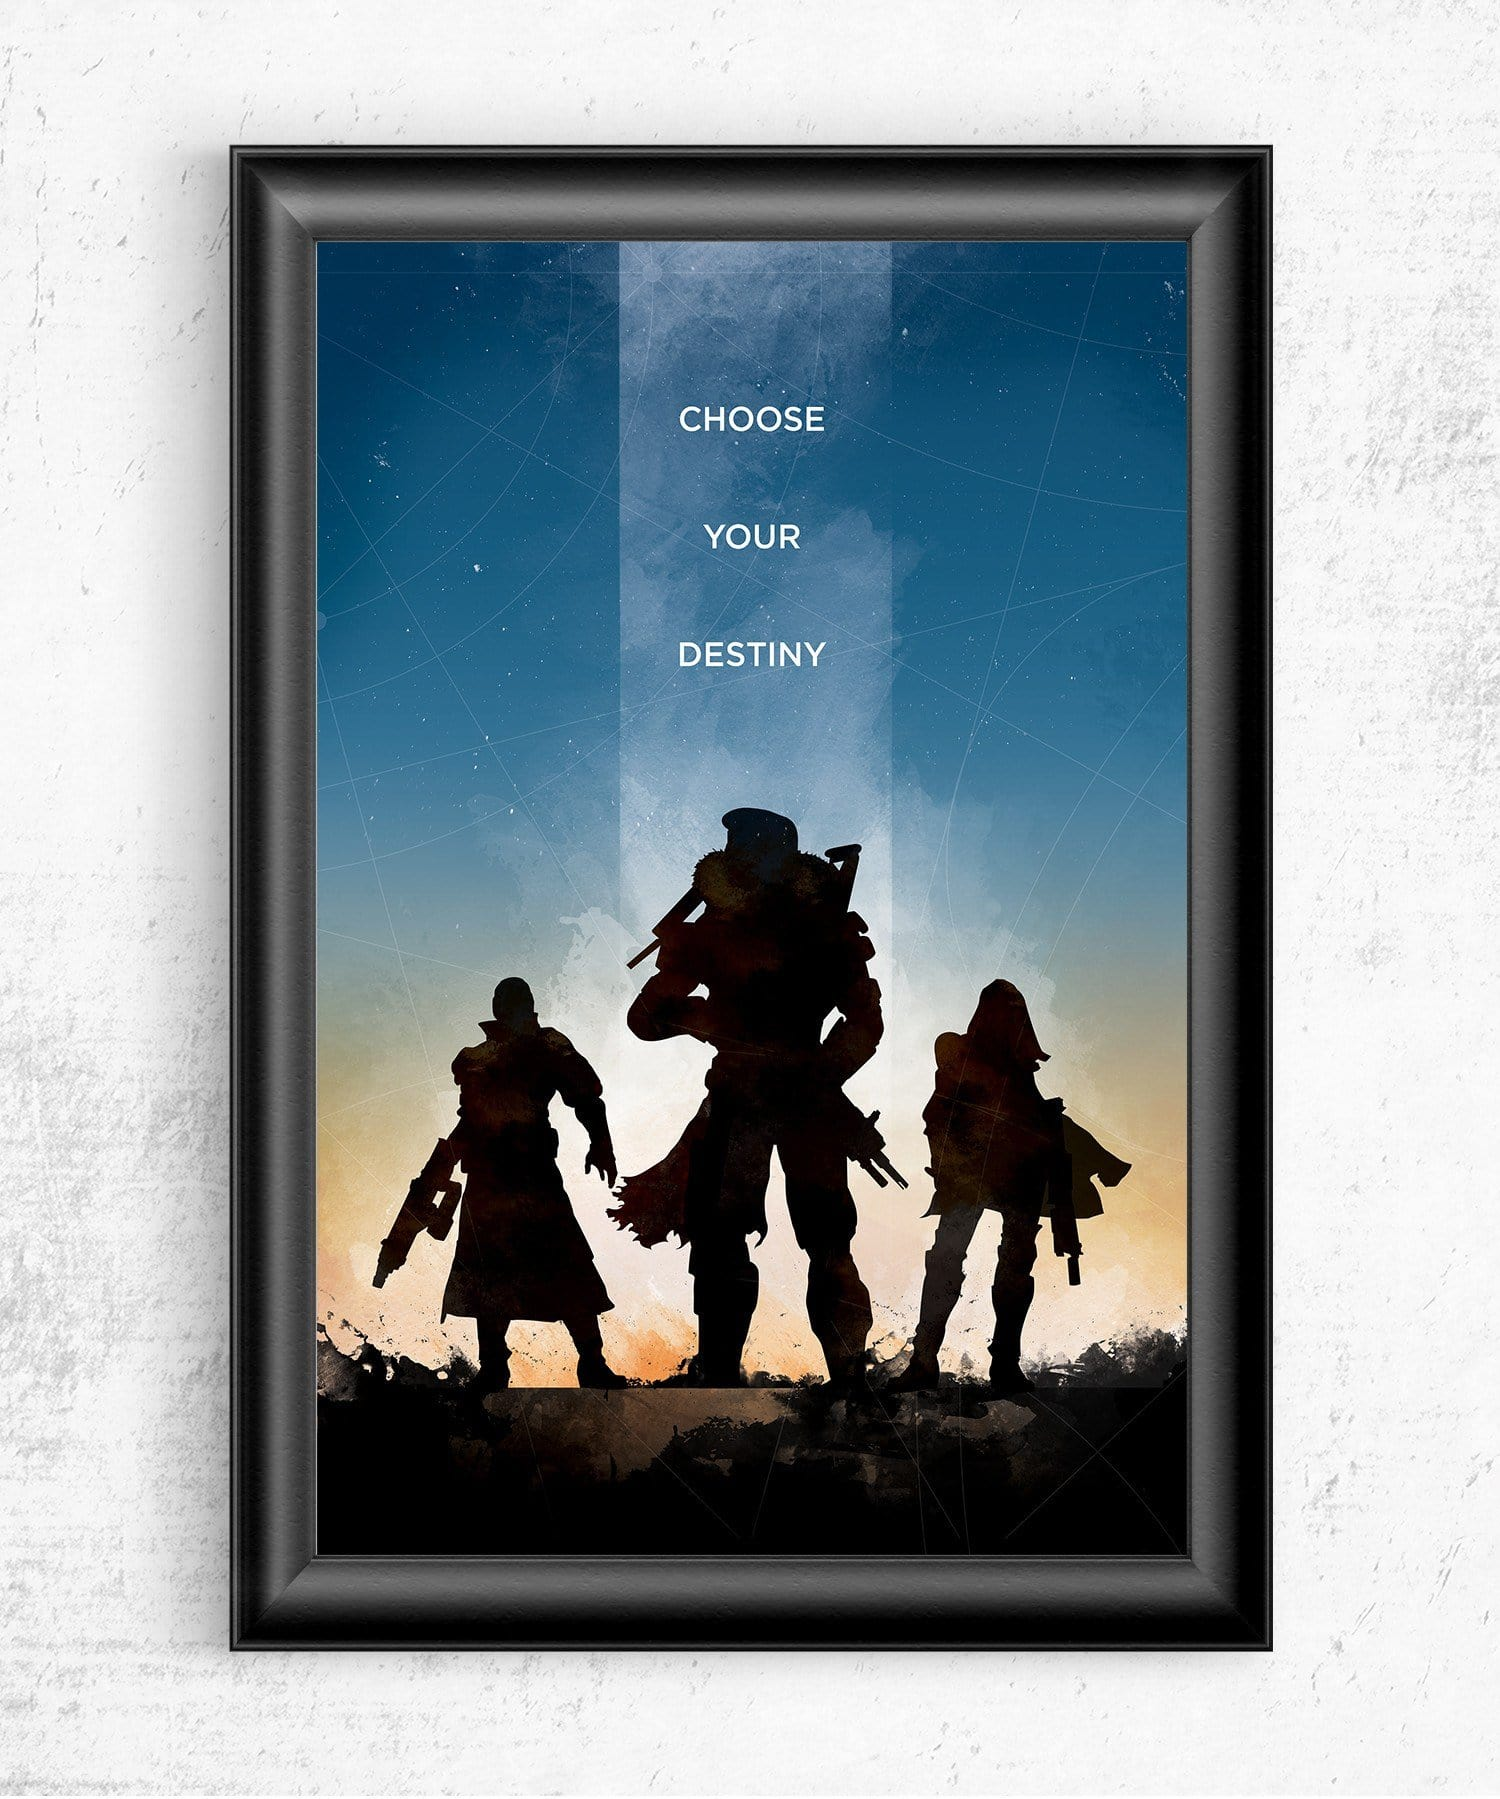 Destiny - Choose Your Destiny Posters by Dylan West - Pixel Empire